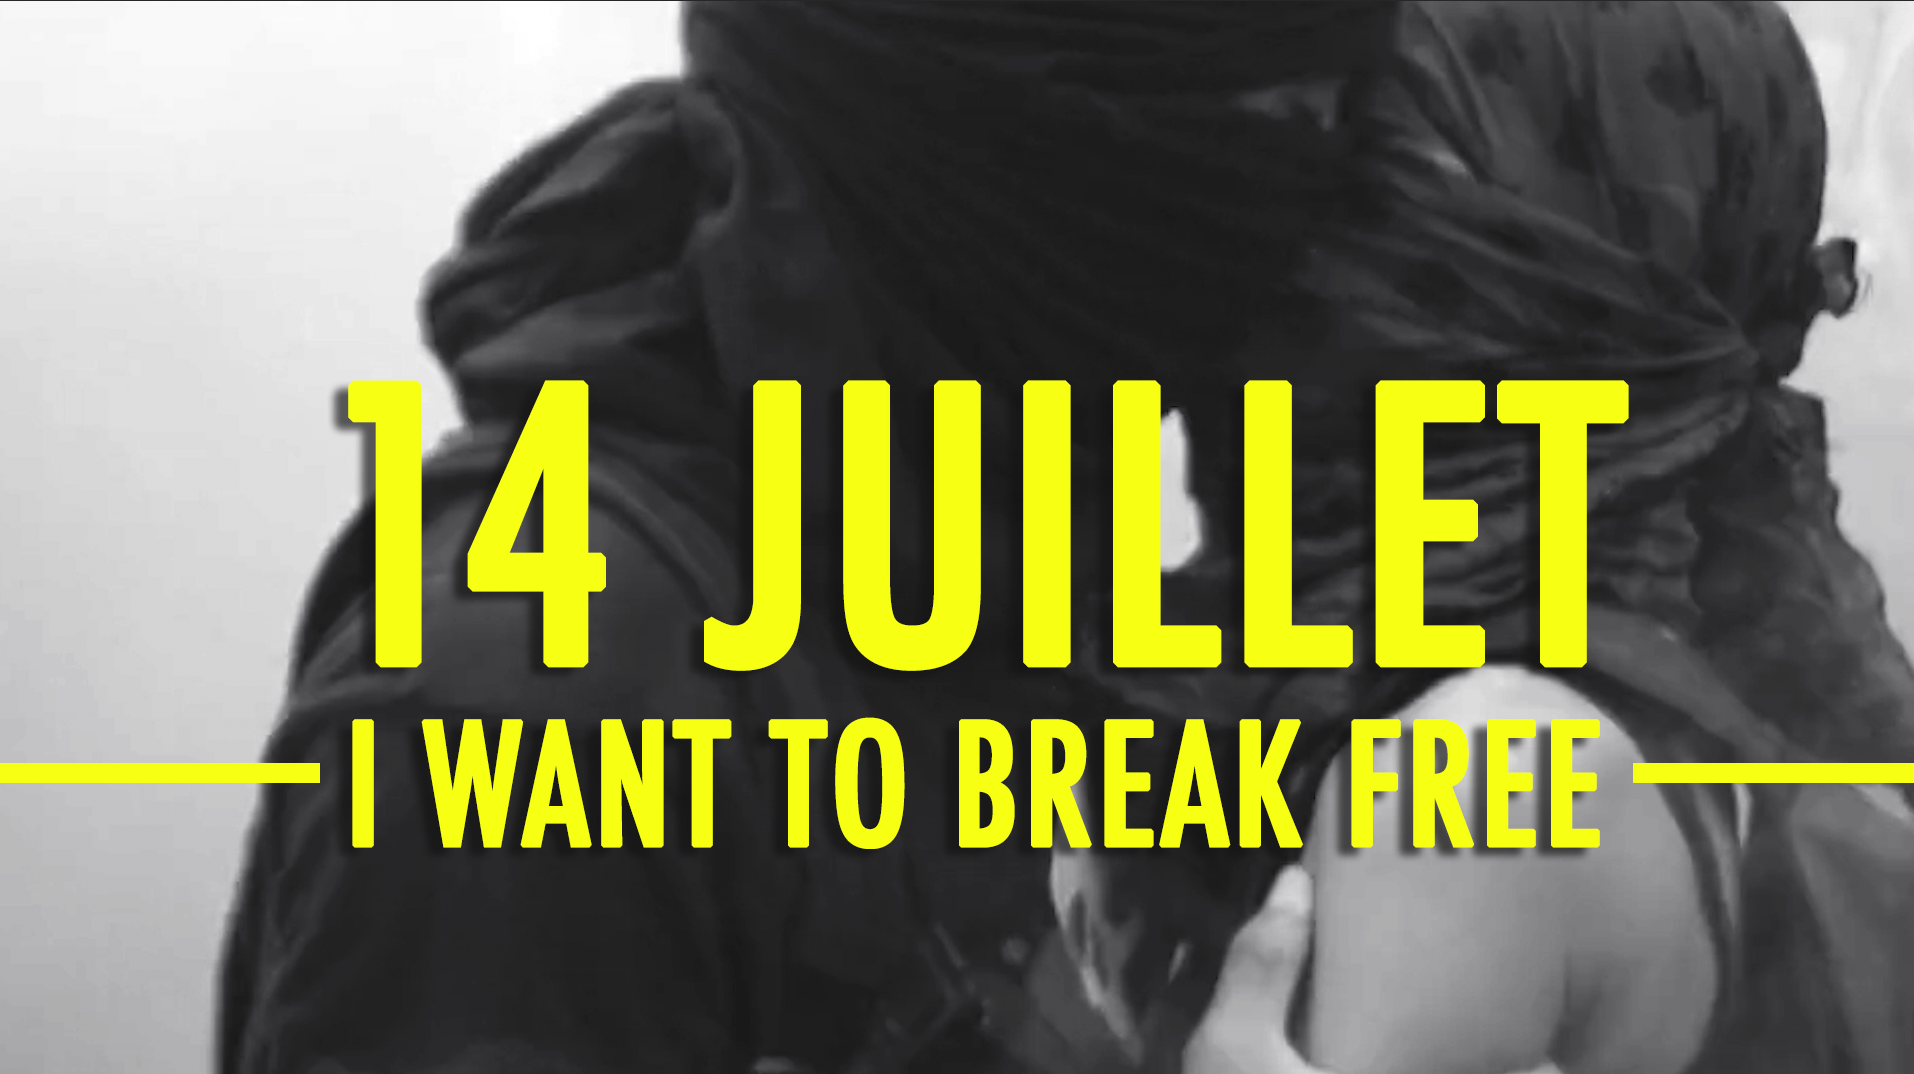 Clip 14 juillet : I want to break free !